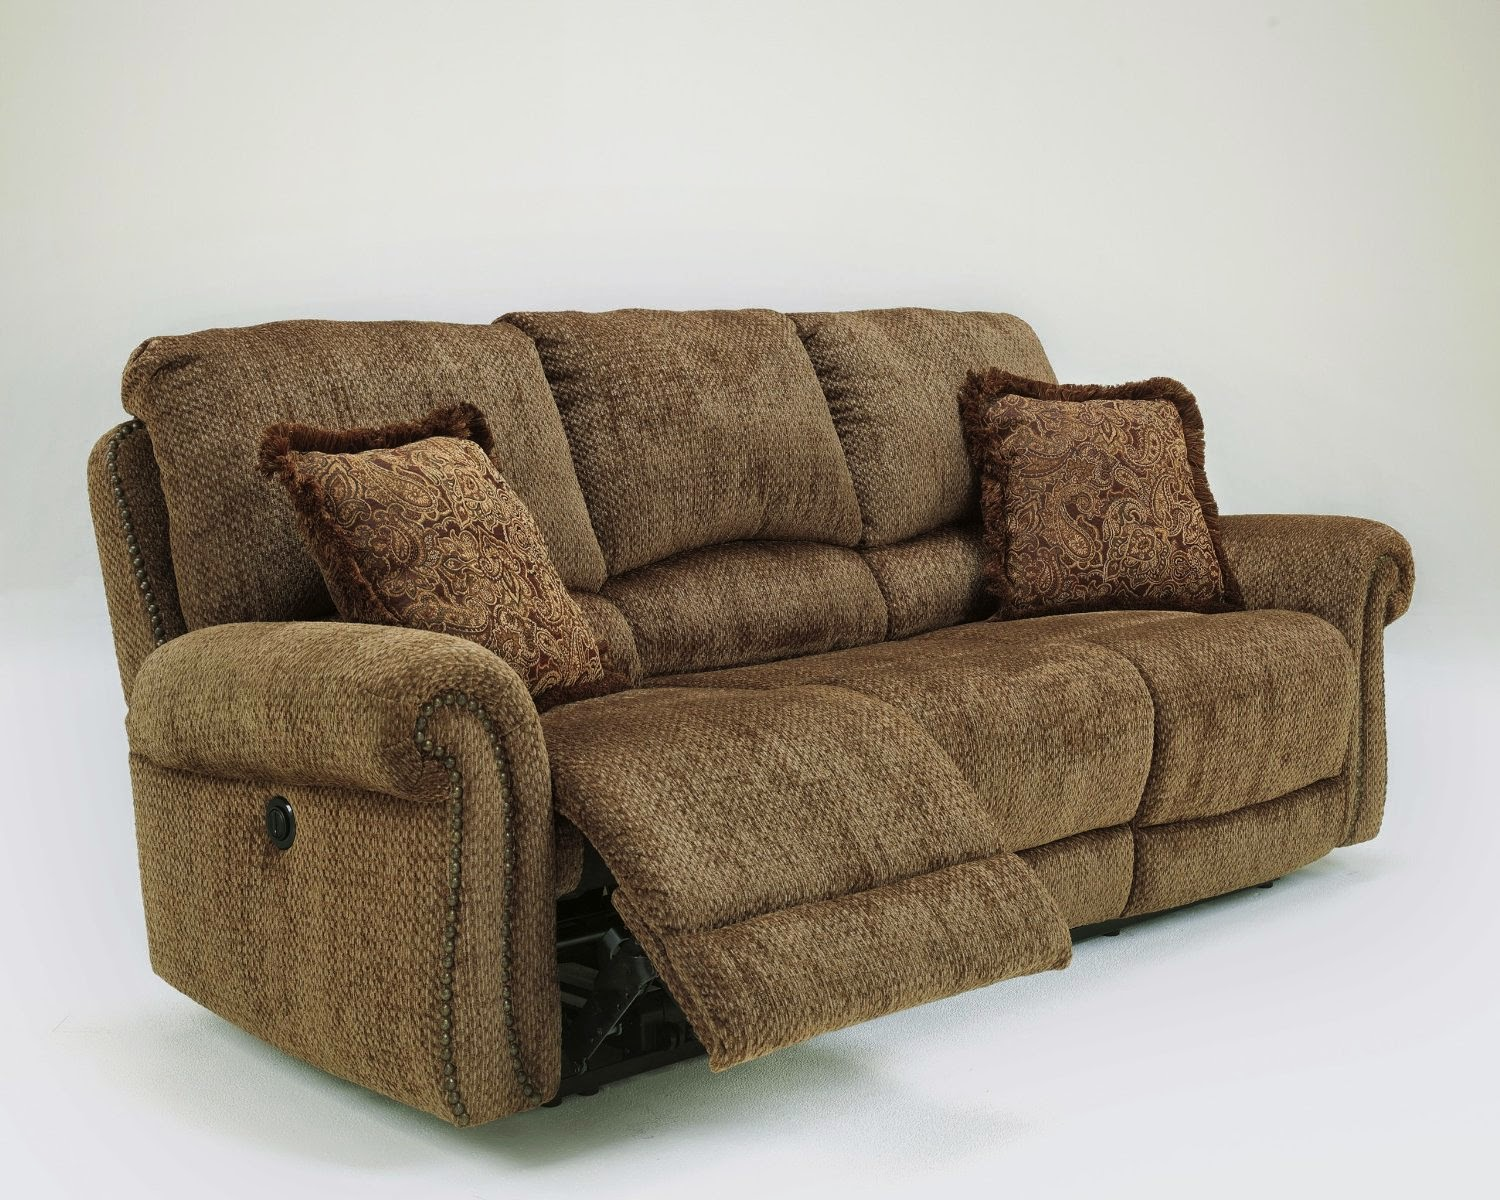 Chenille Reclining Sofa 2 Piece Reclining Sofa Set In Chianti Color Chenille Fabric Thesofa